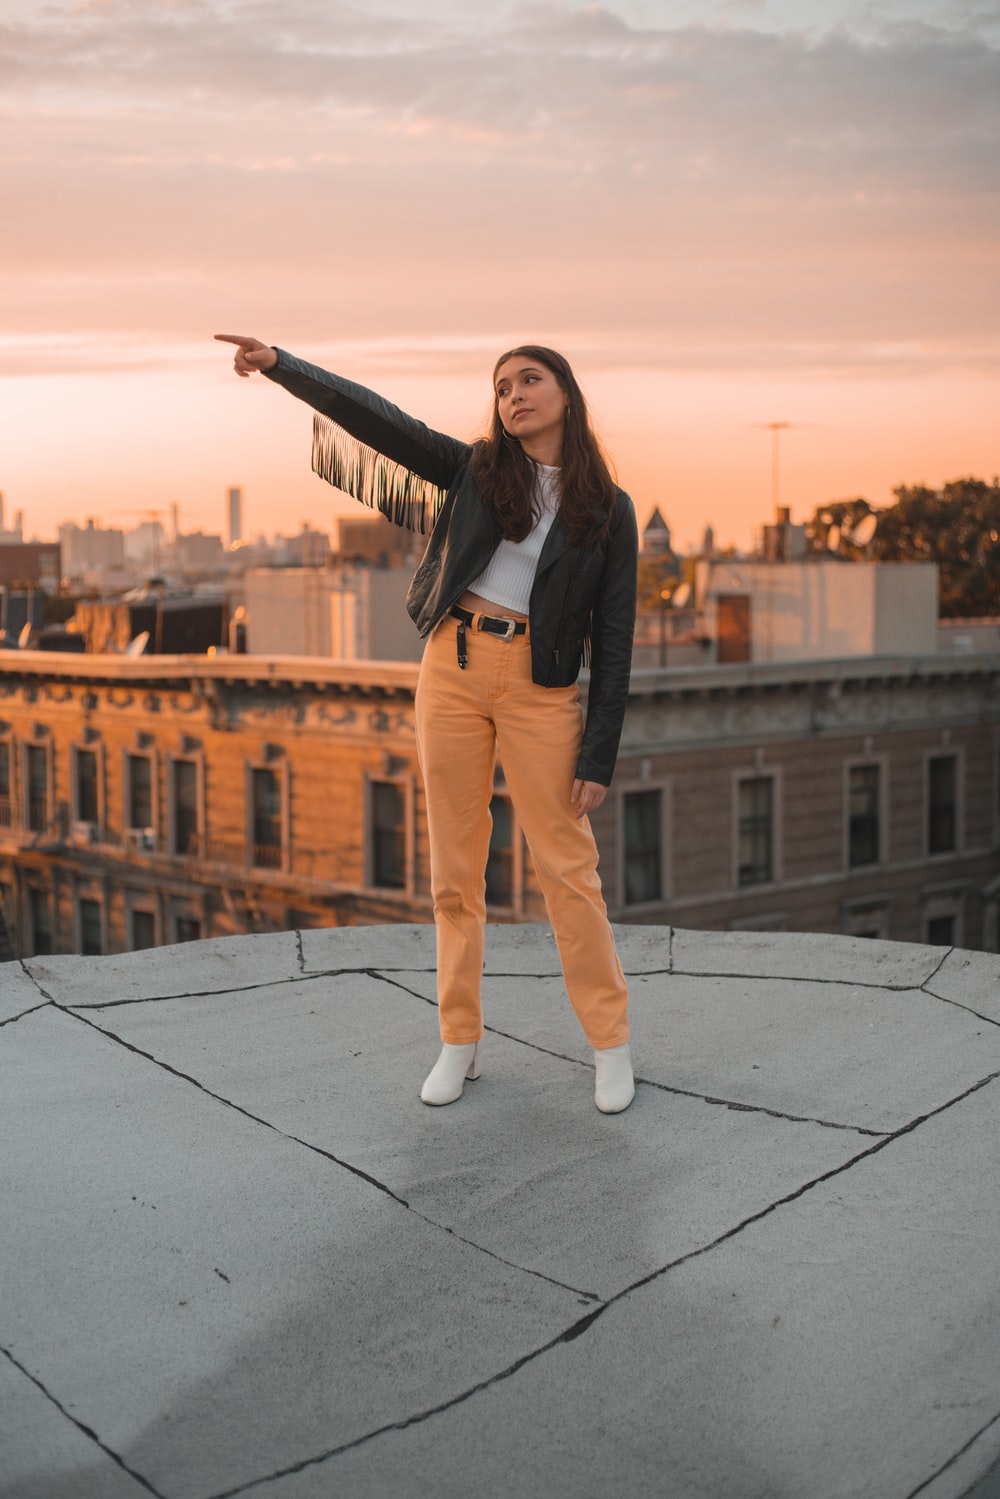 woman in black long sleeve shirt and brown pants standing on black tile floor during daytime